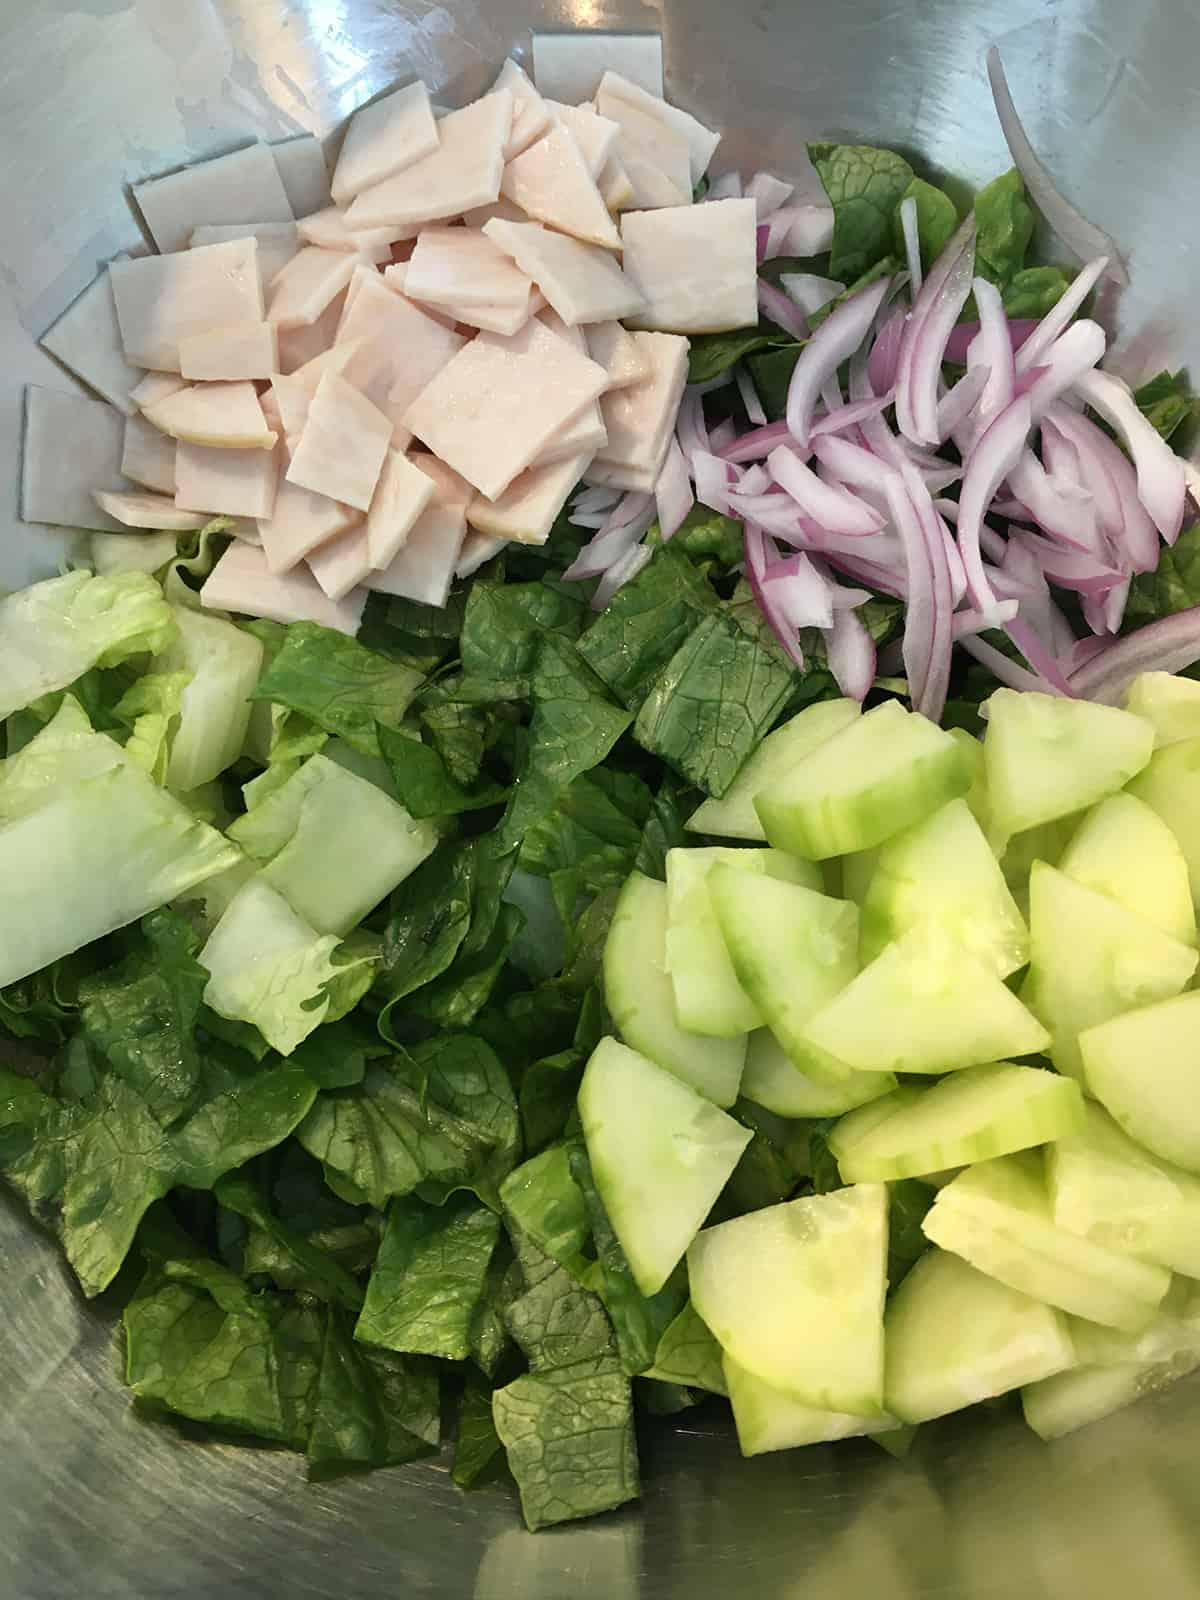 Sliced chicken, red onions, cucumbers and chopped Romaine lettuce in a stainless steel mixing bowl